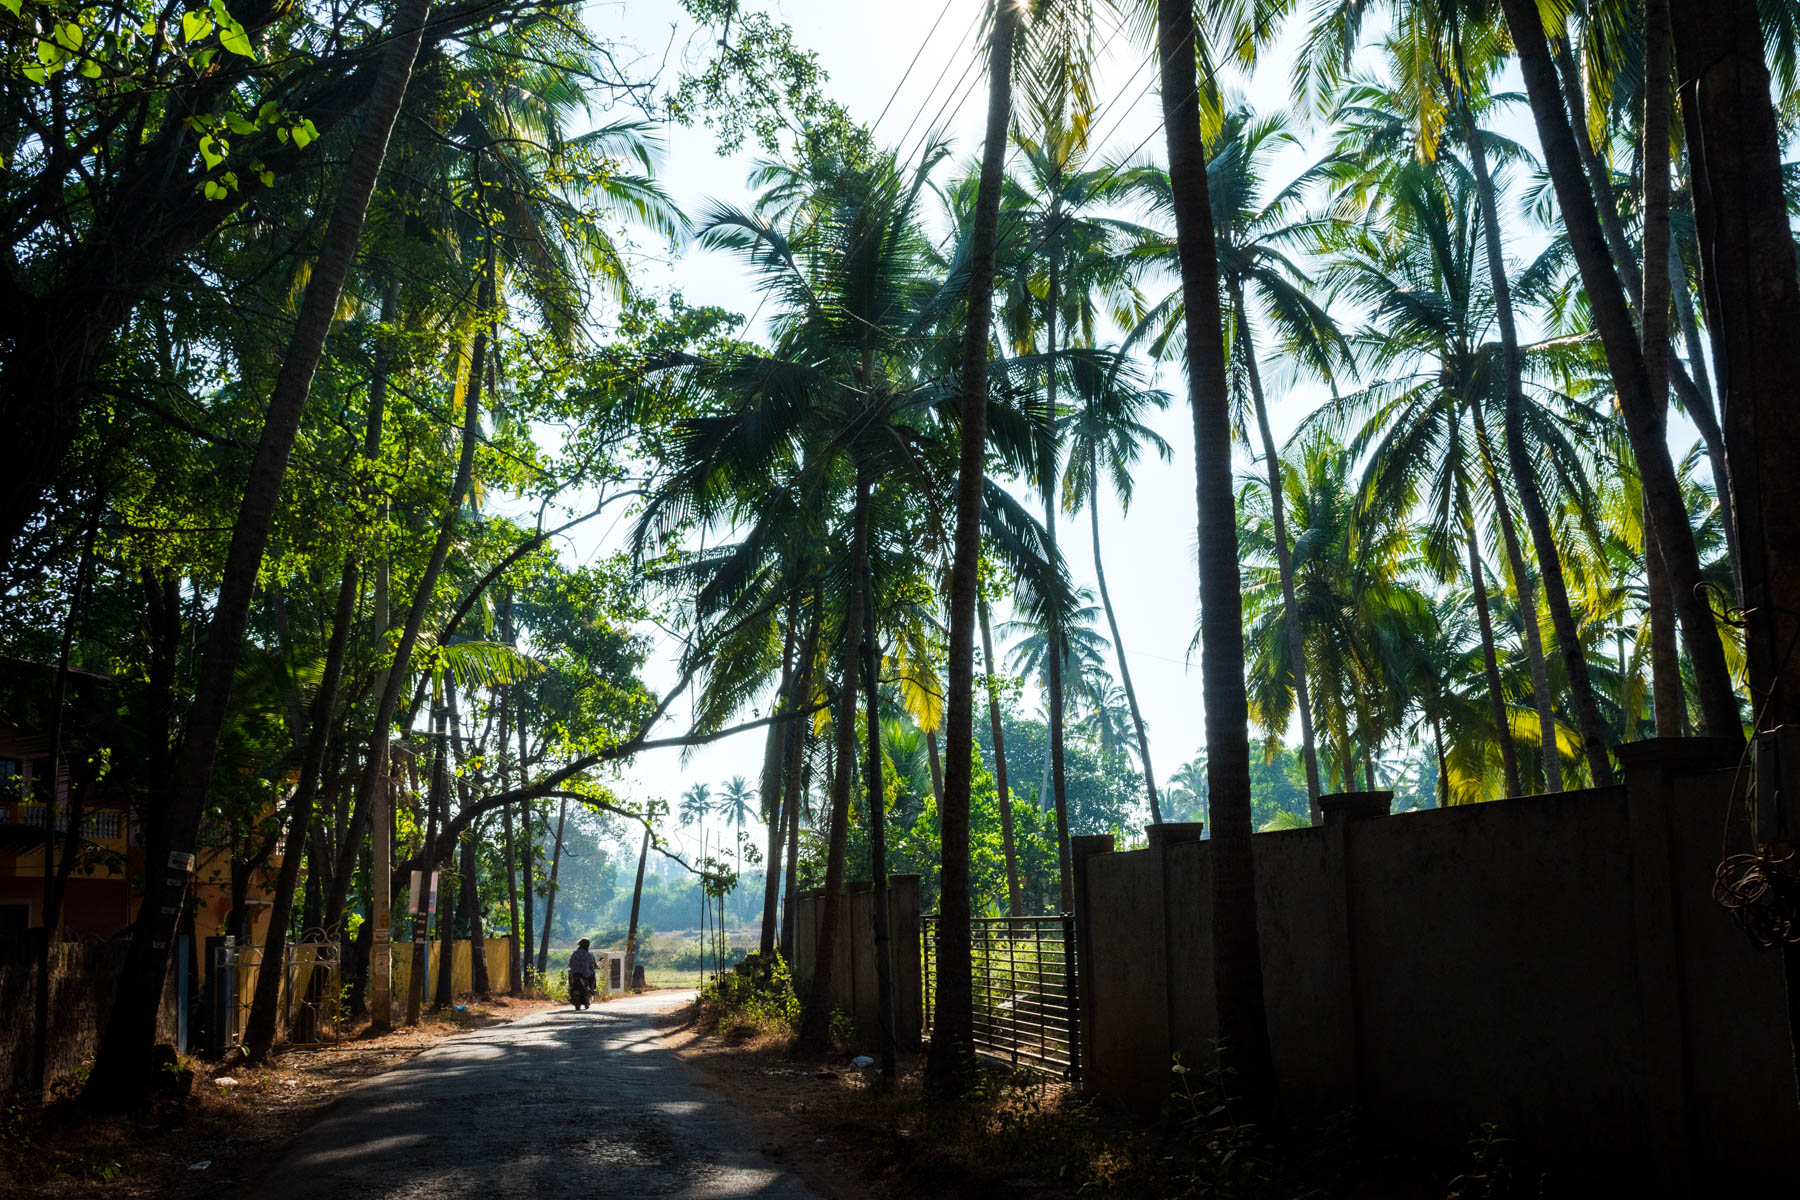 How much it costs to travel in South India on a budget - Motorbiking in Morjim, North Goa, India - Lost With Purpose